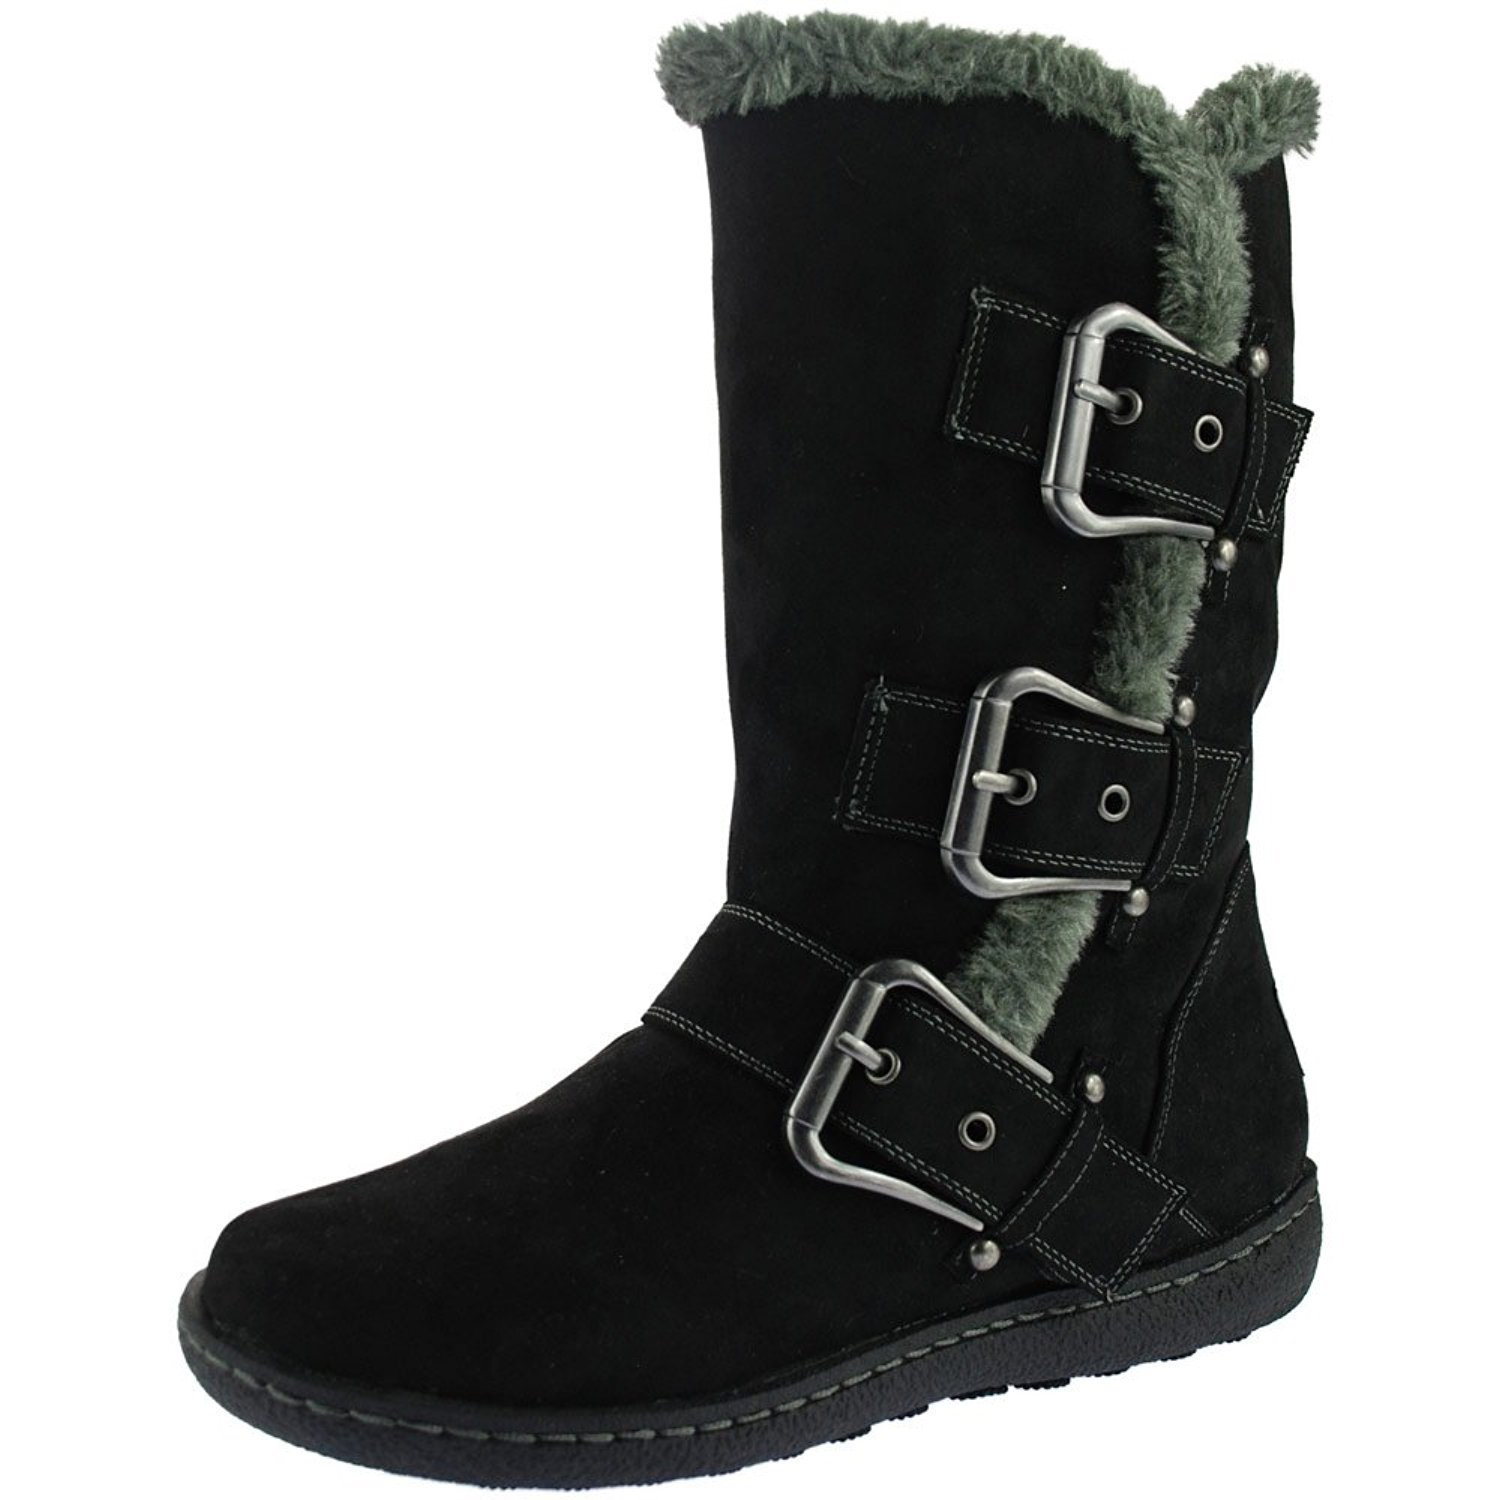 how to clean suede winter boots national sheriffs